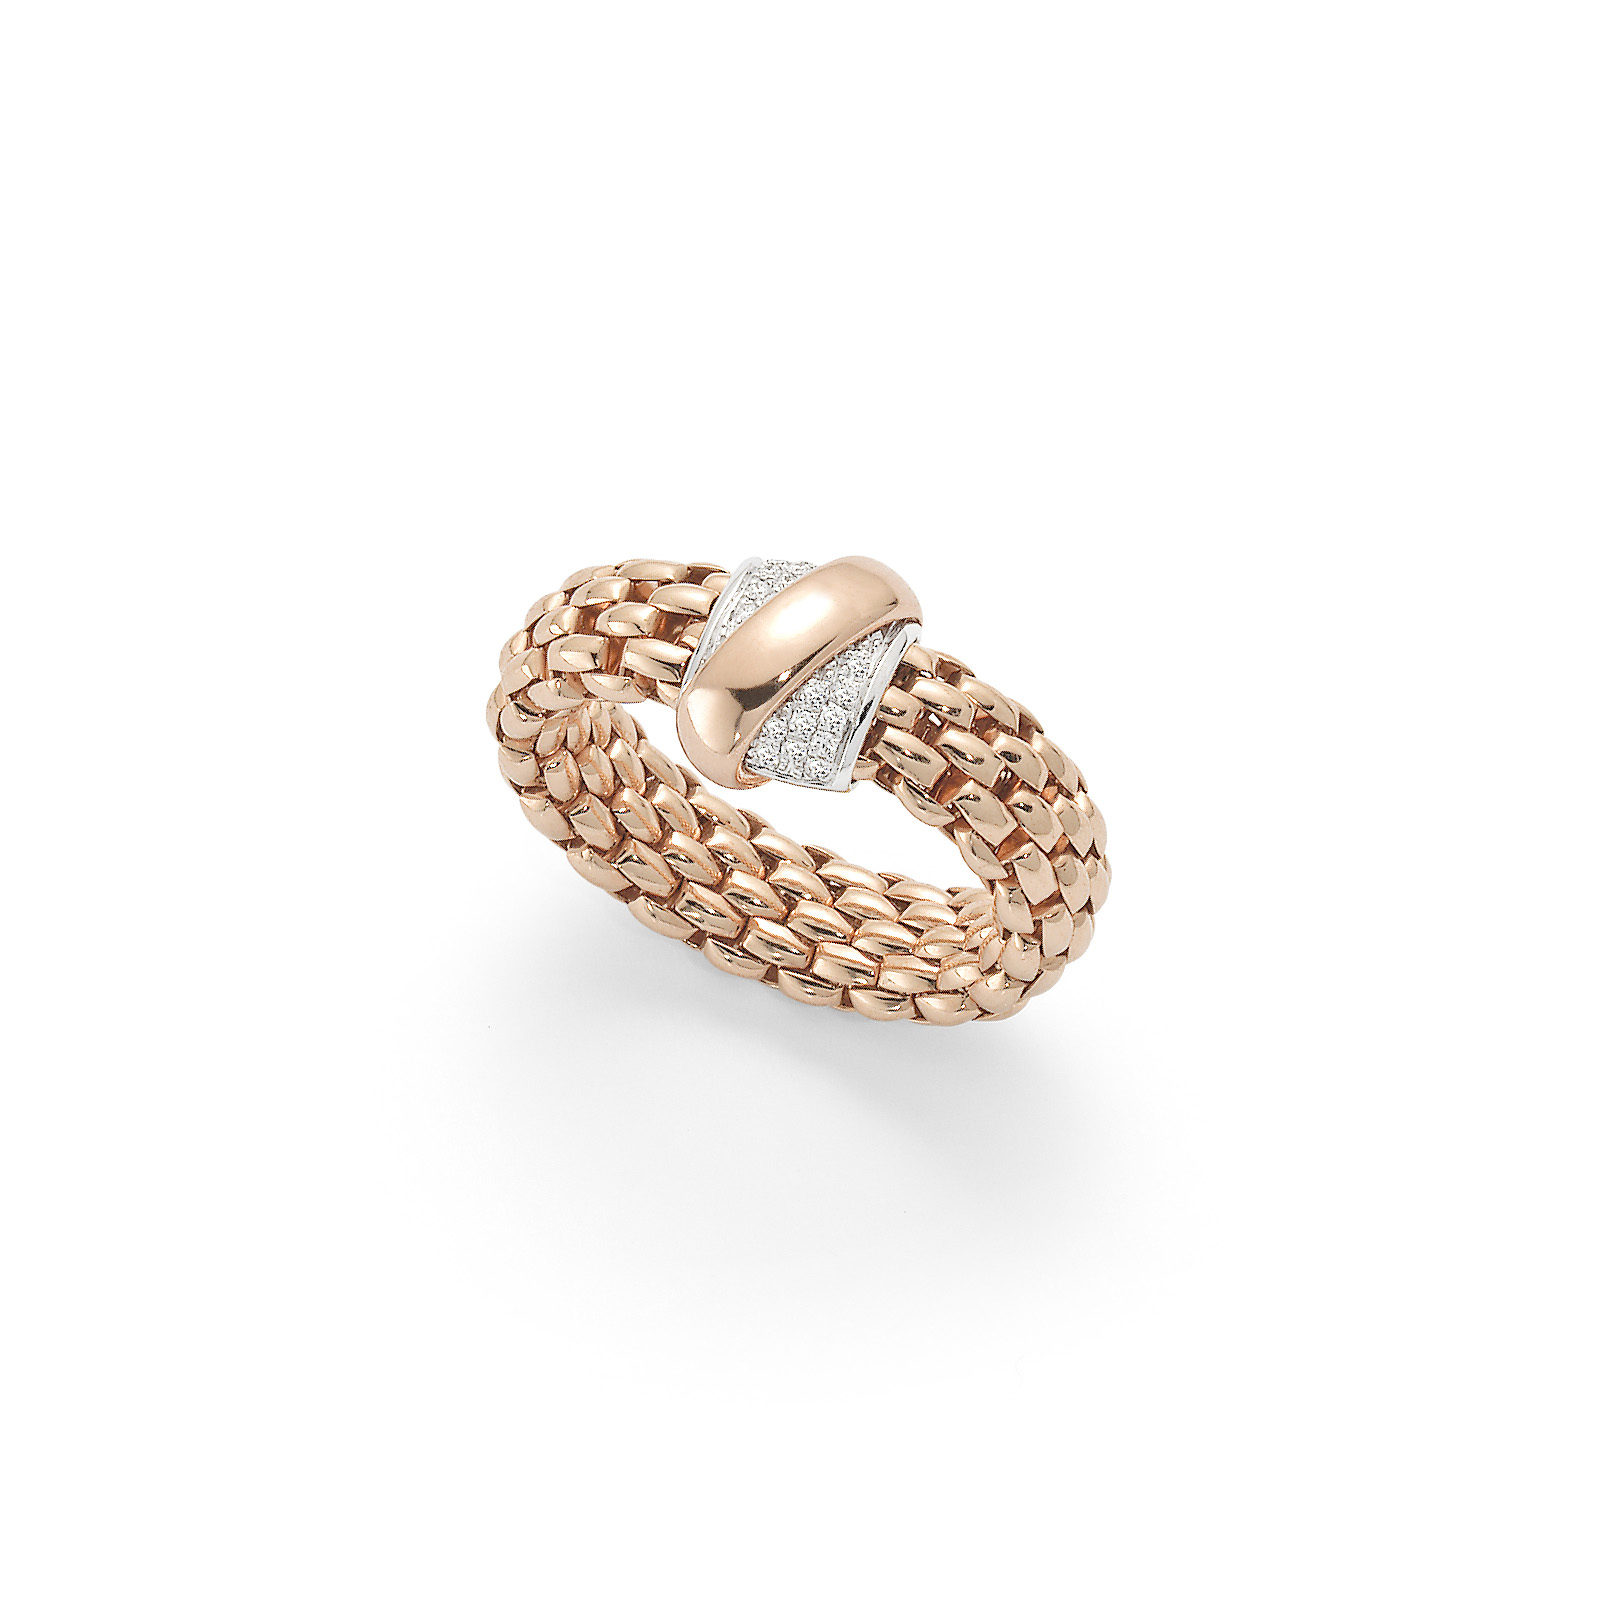 Fope Flex'it Vendome Rose Gold Diamond Ring - Size Medium